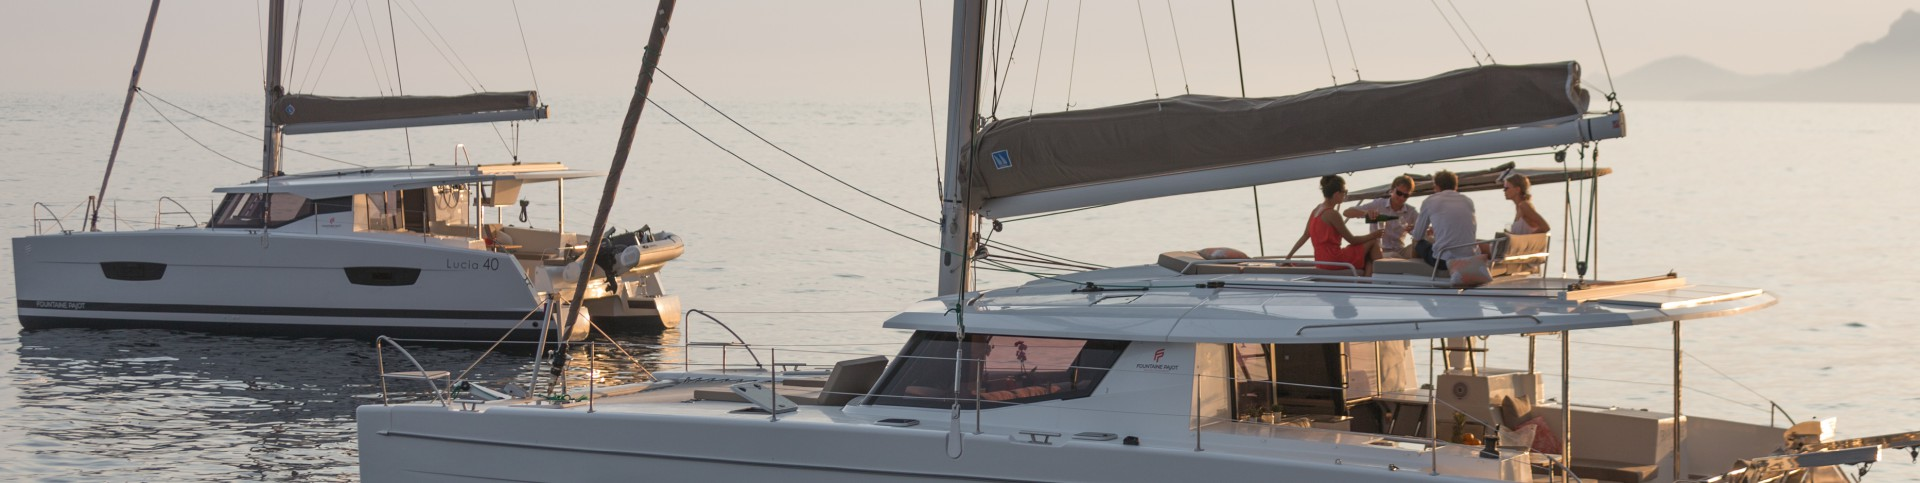 Fountaine-Pajot Boatshows